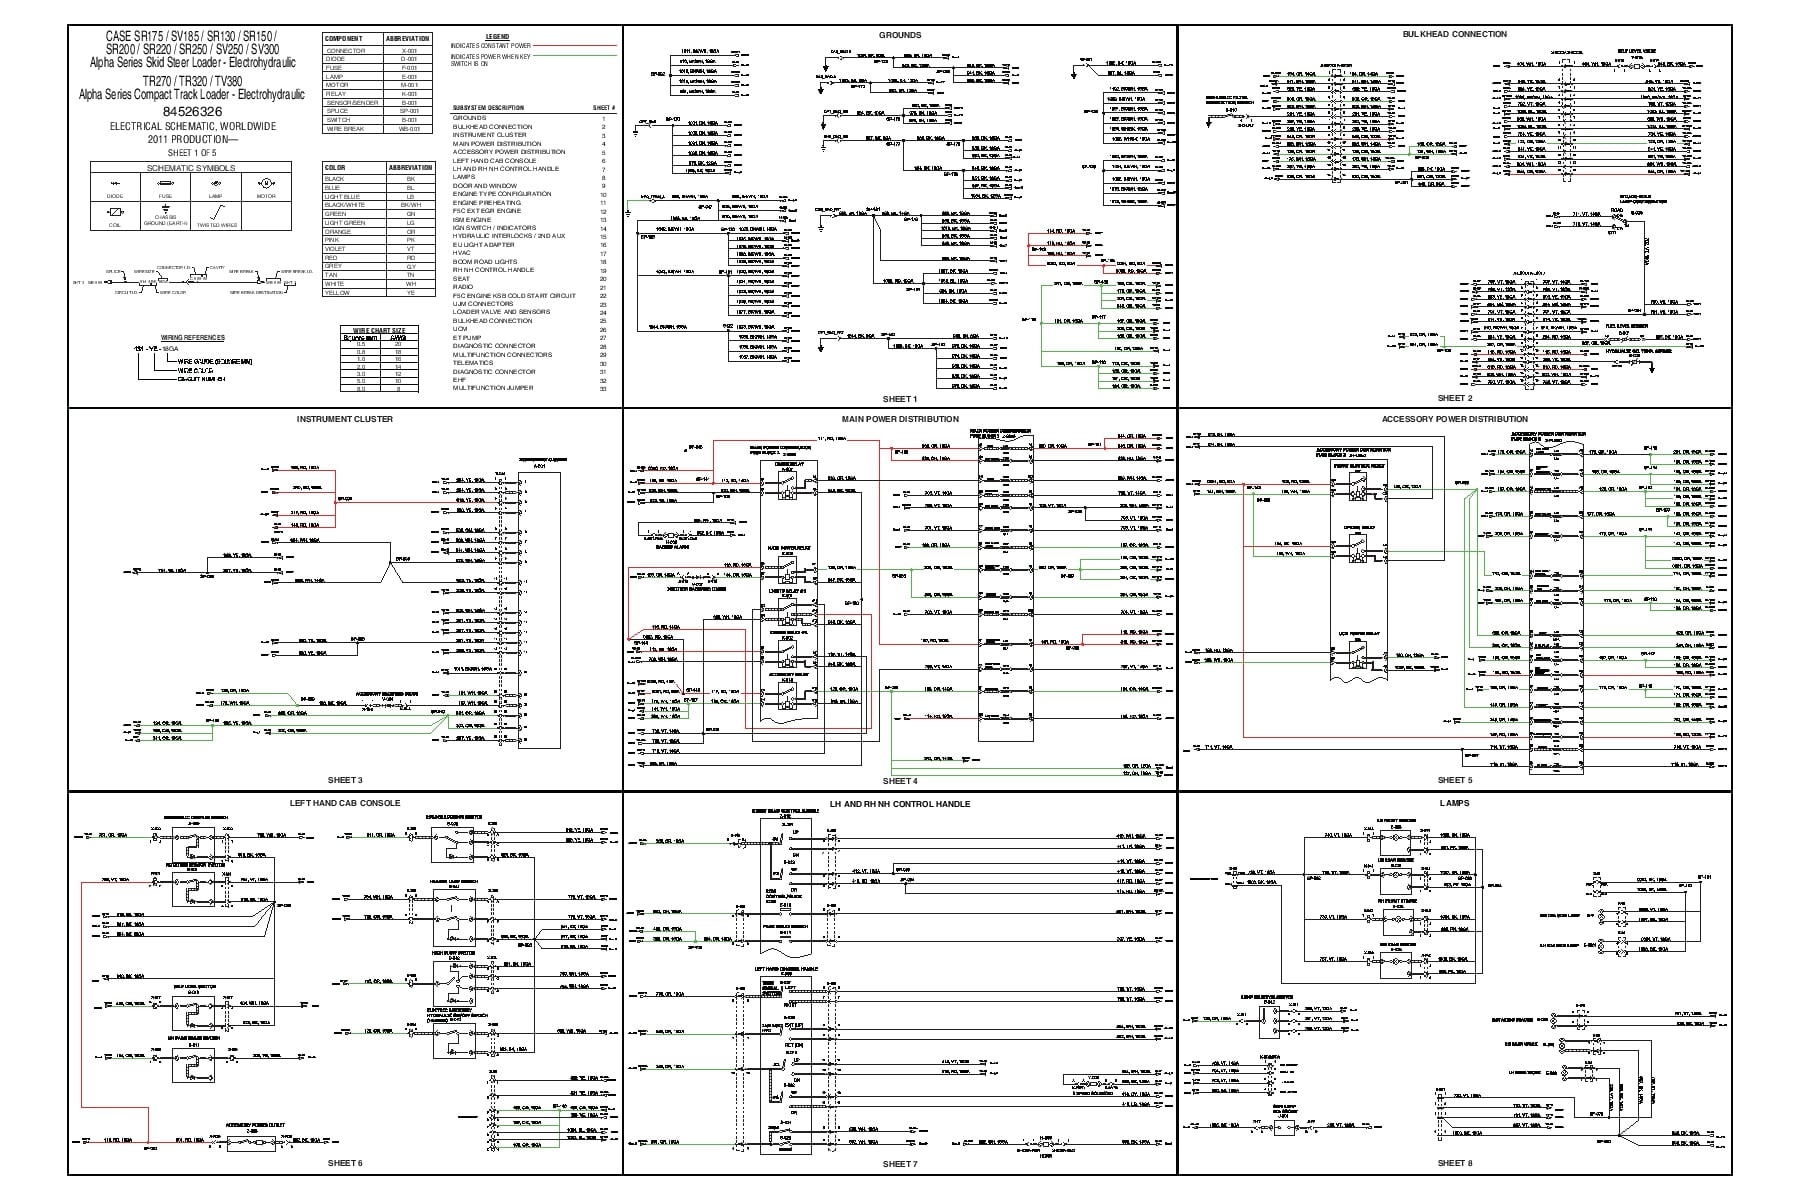 [DIAGRAM] Yamaha Zuma Wiring Diagram FULL Version HD